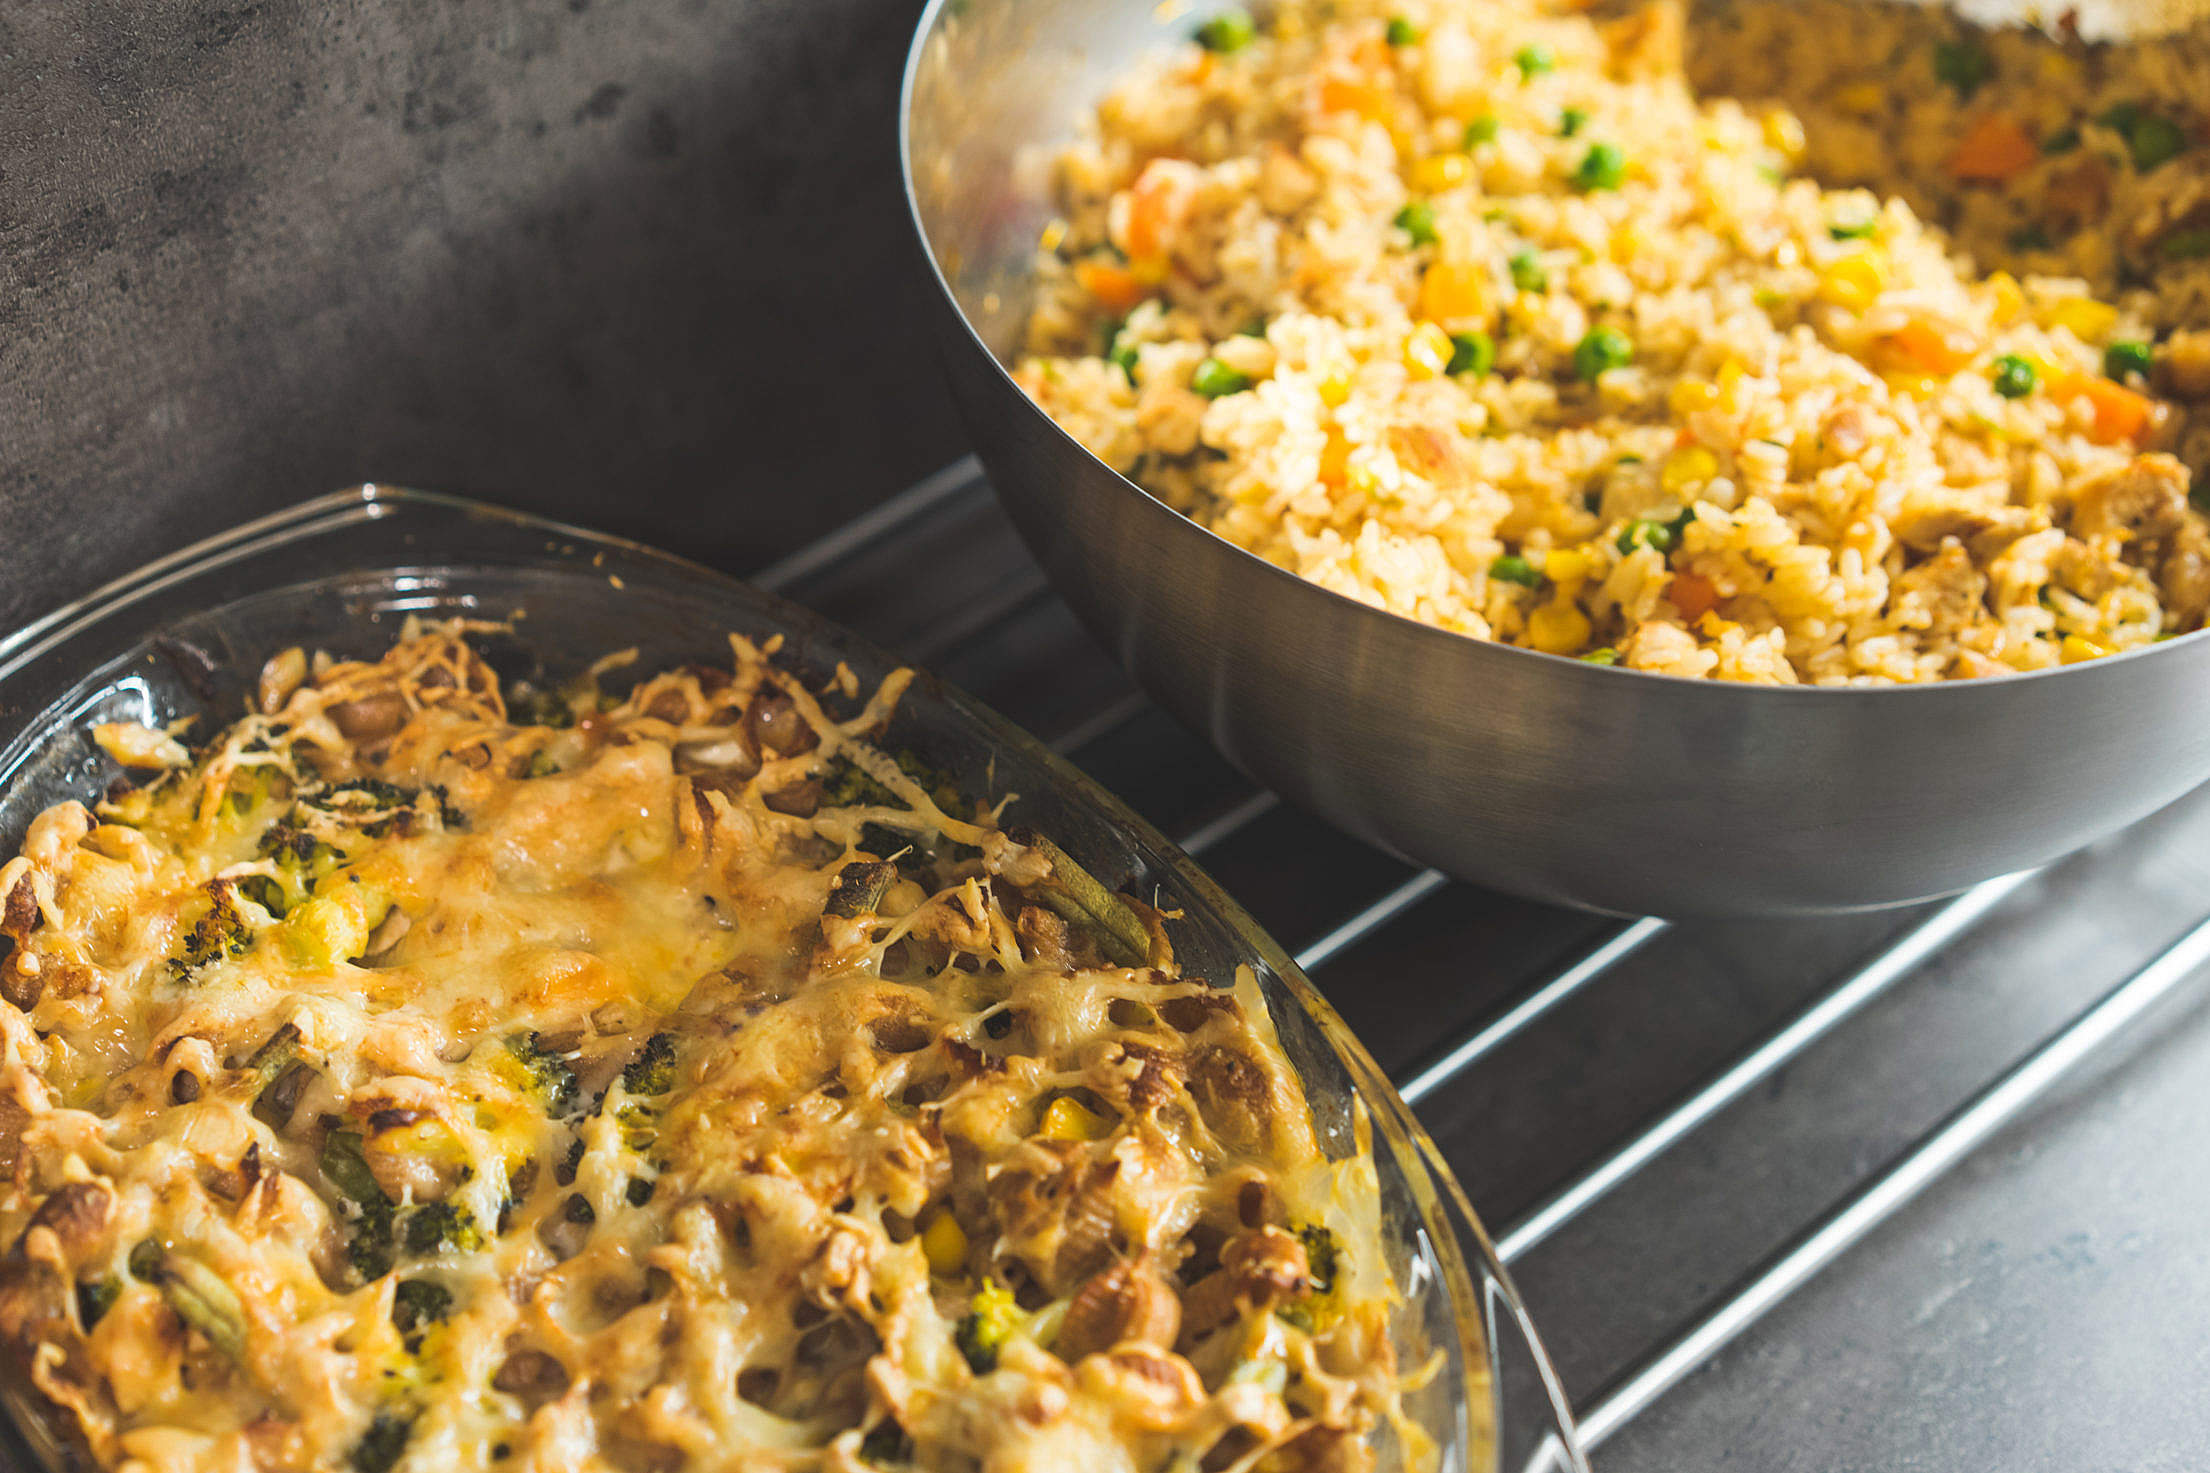 Risotto and Roasted Wholemeal Pasta Free Stock Photo